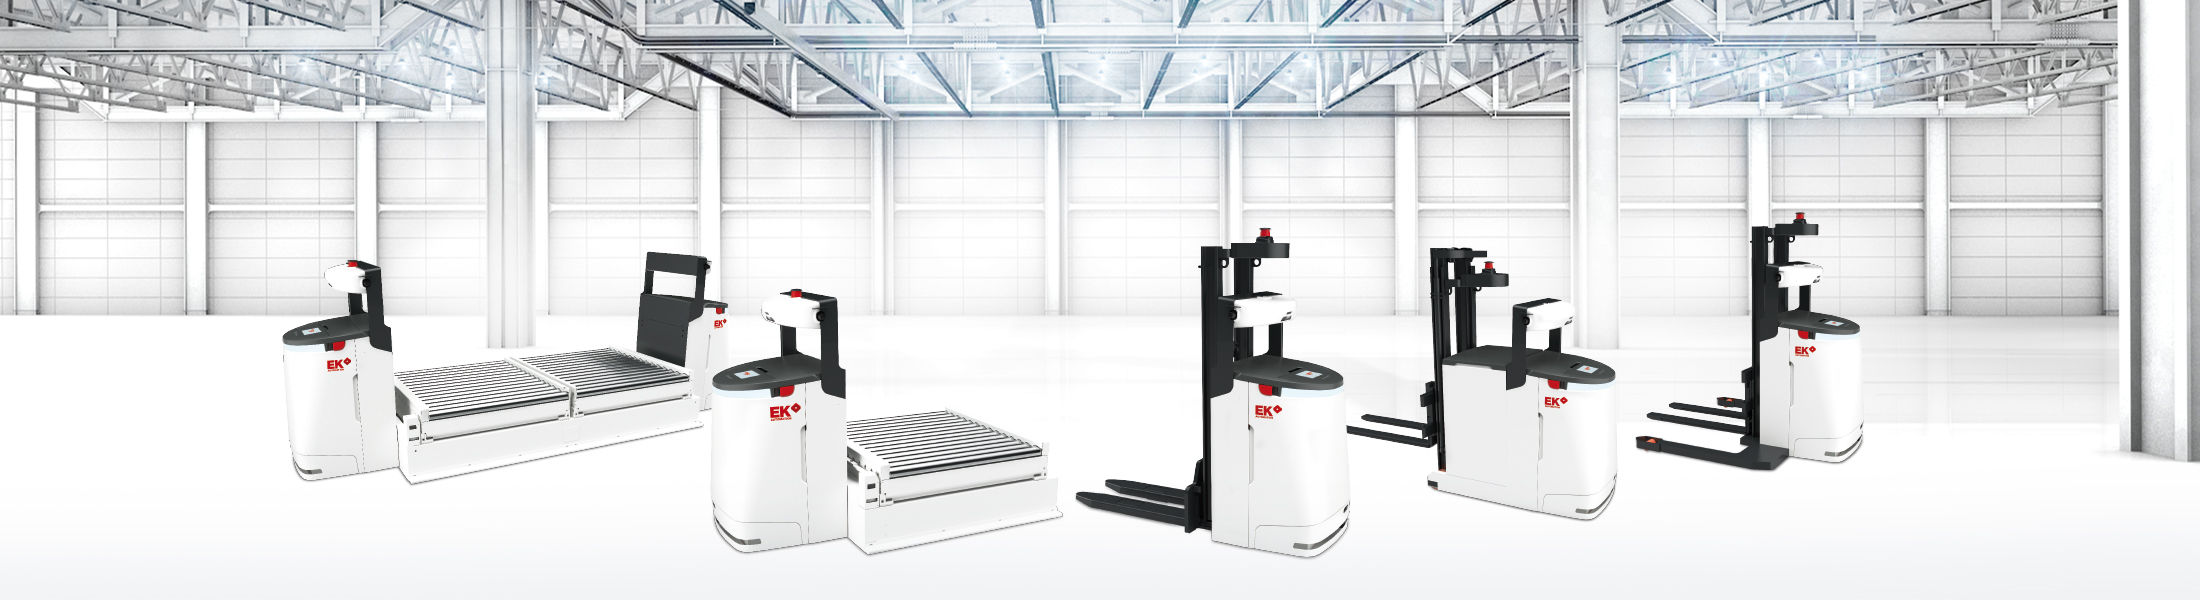 E&K Automation Make Significant Investments in the UK